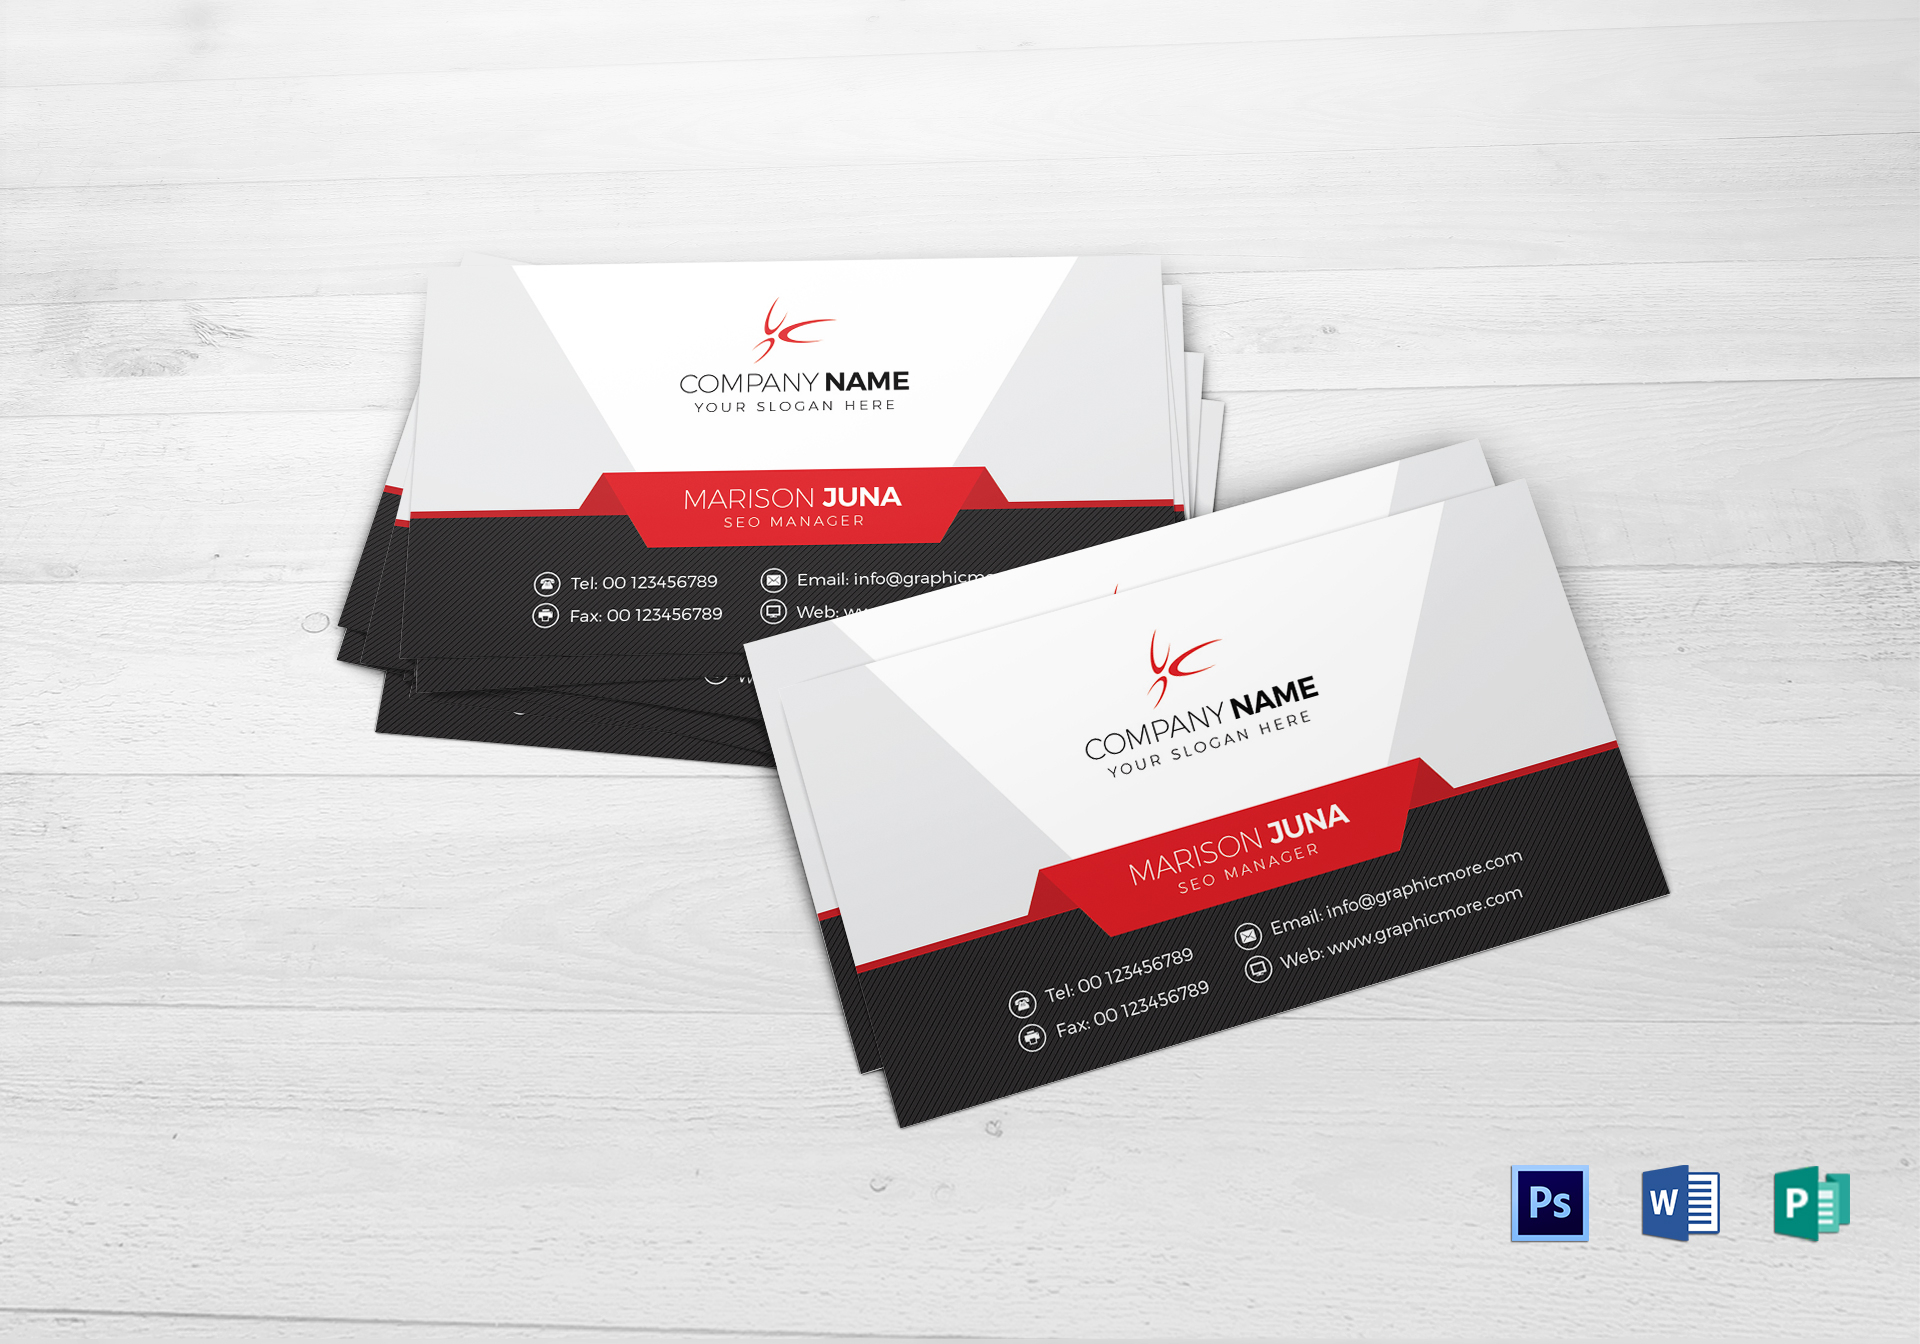 Business card template publisher images free business cards manager business card choice image free business cards manager business card design template in word psd magicingreecefo Images